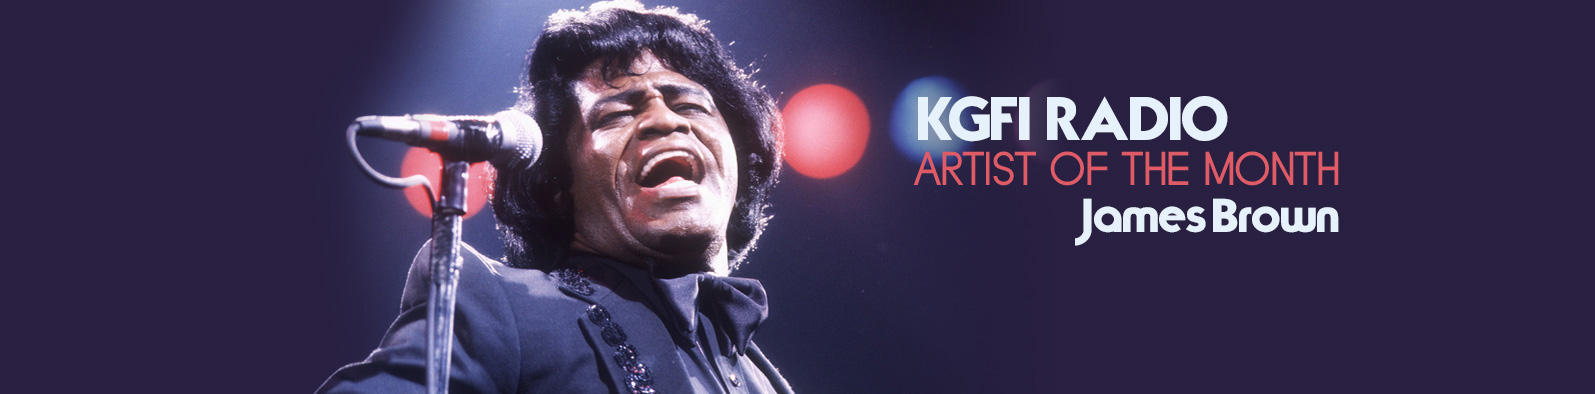 artist of the month james brown